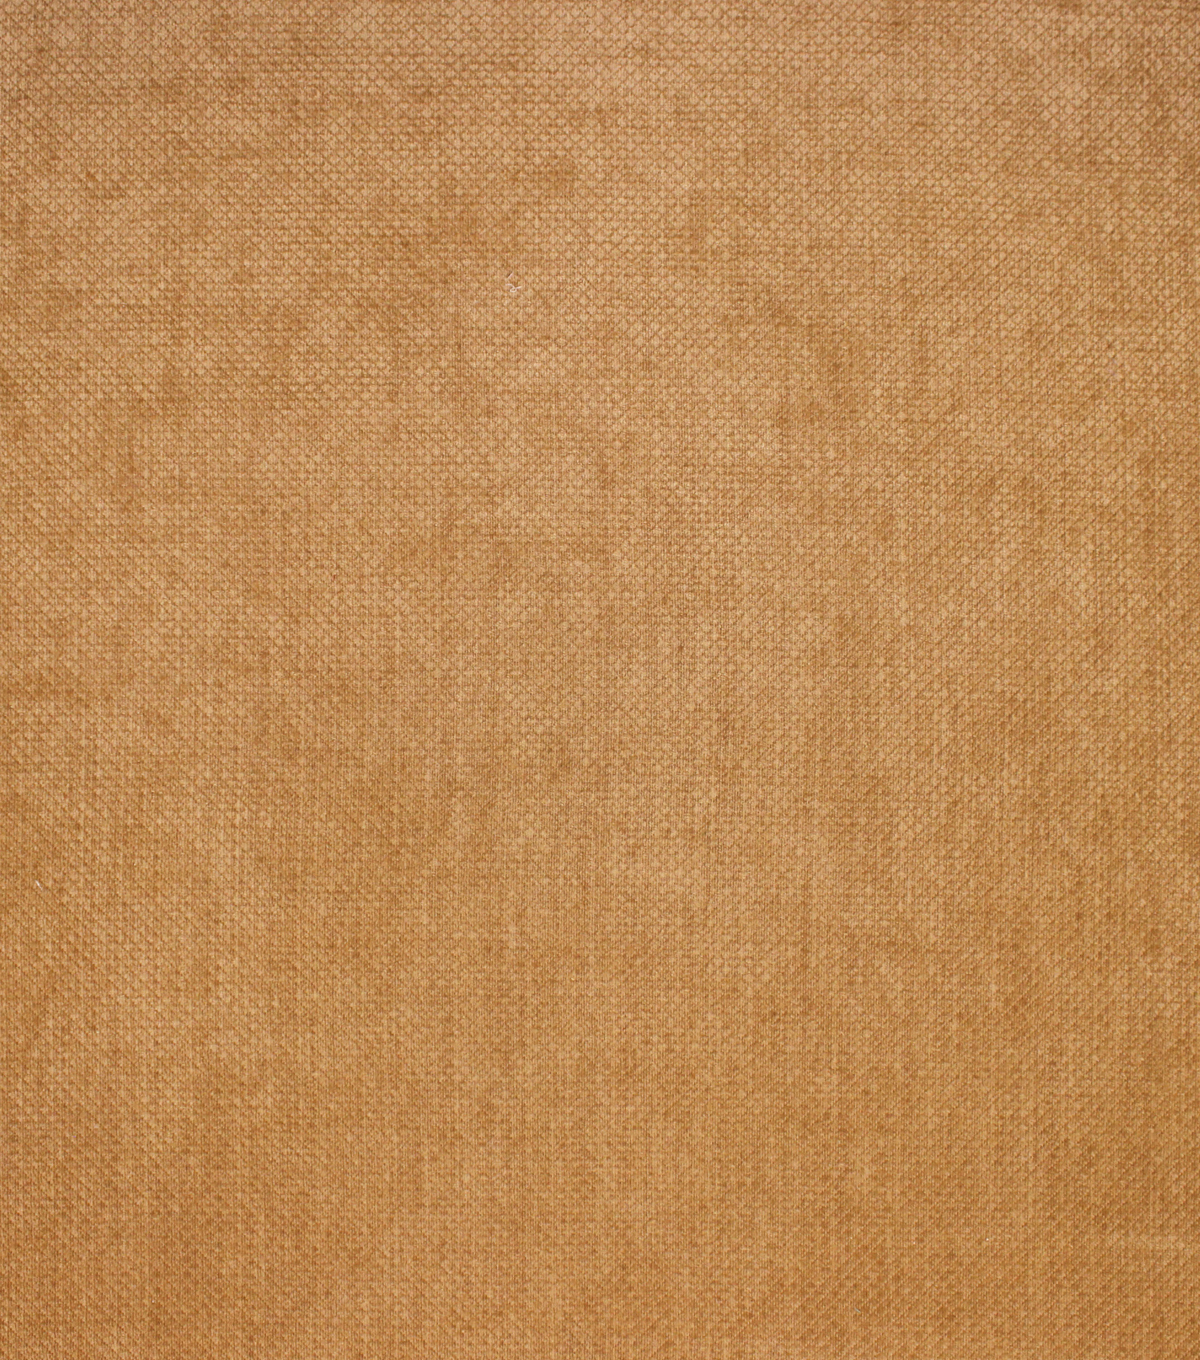 Multi-Purpose Decor Fabric 57\u0022-Tan